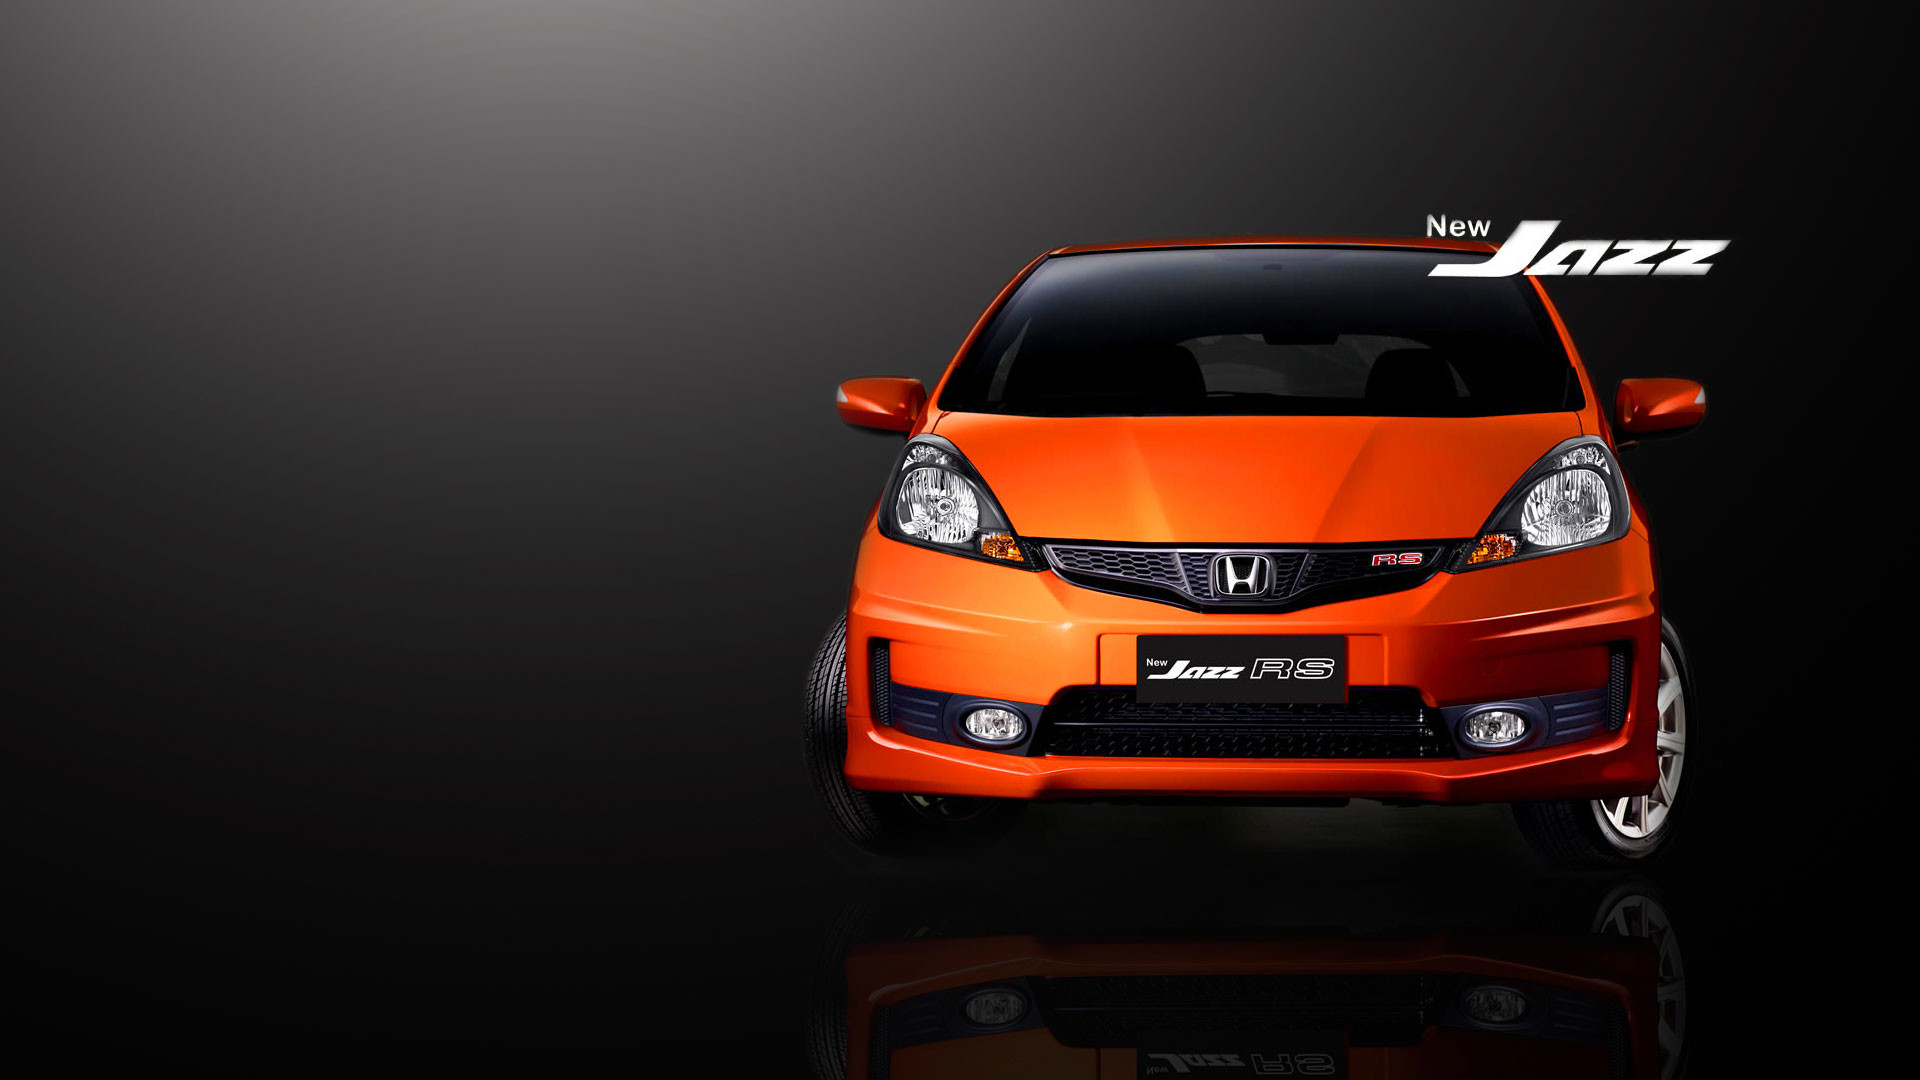 1920x1080 New Honda Jazz RS 2013 HD Wallpapers in HD